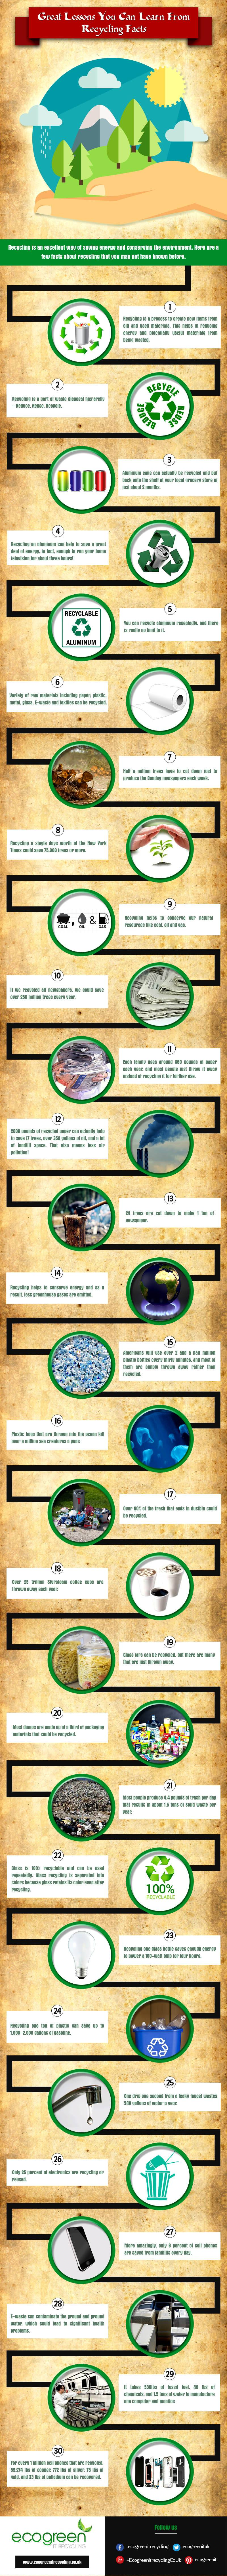 30 Great Lessons You Can Learn From Recycling Facts - Infographic